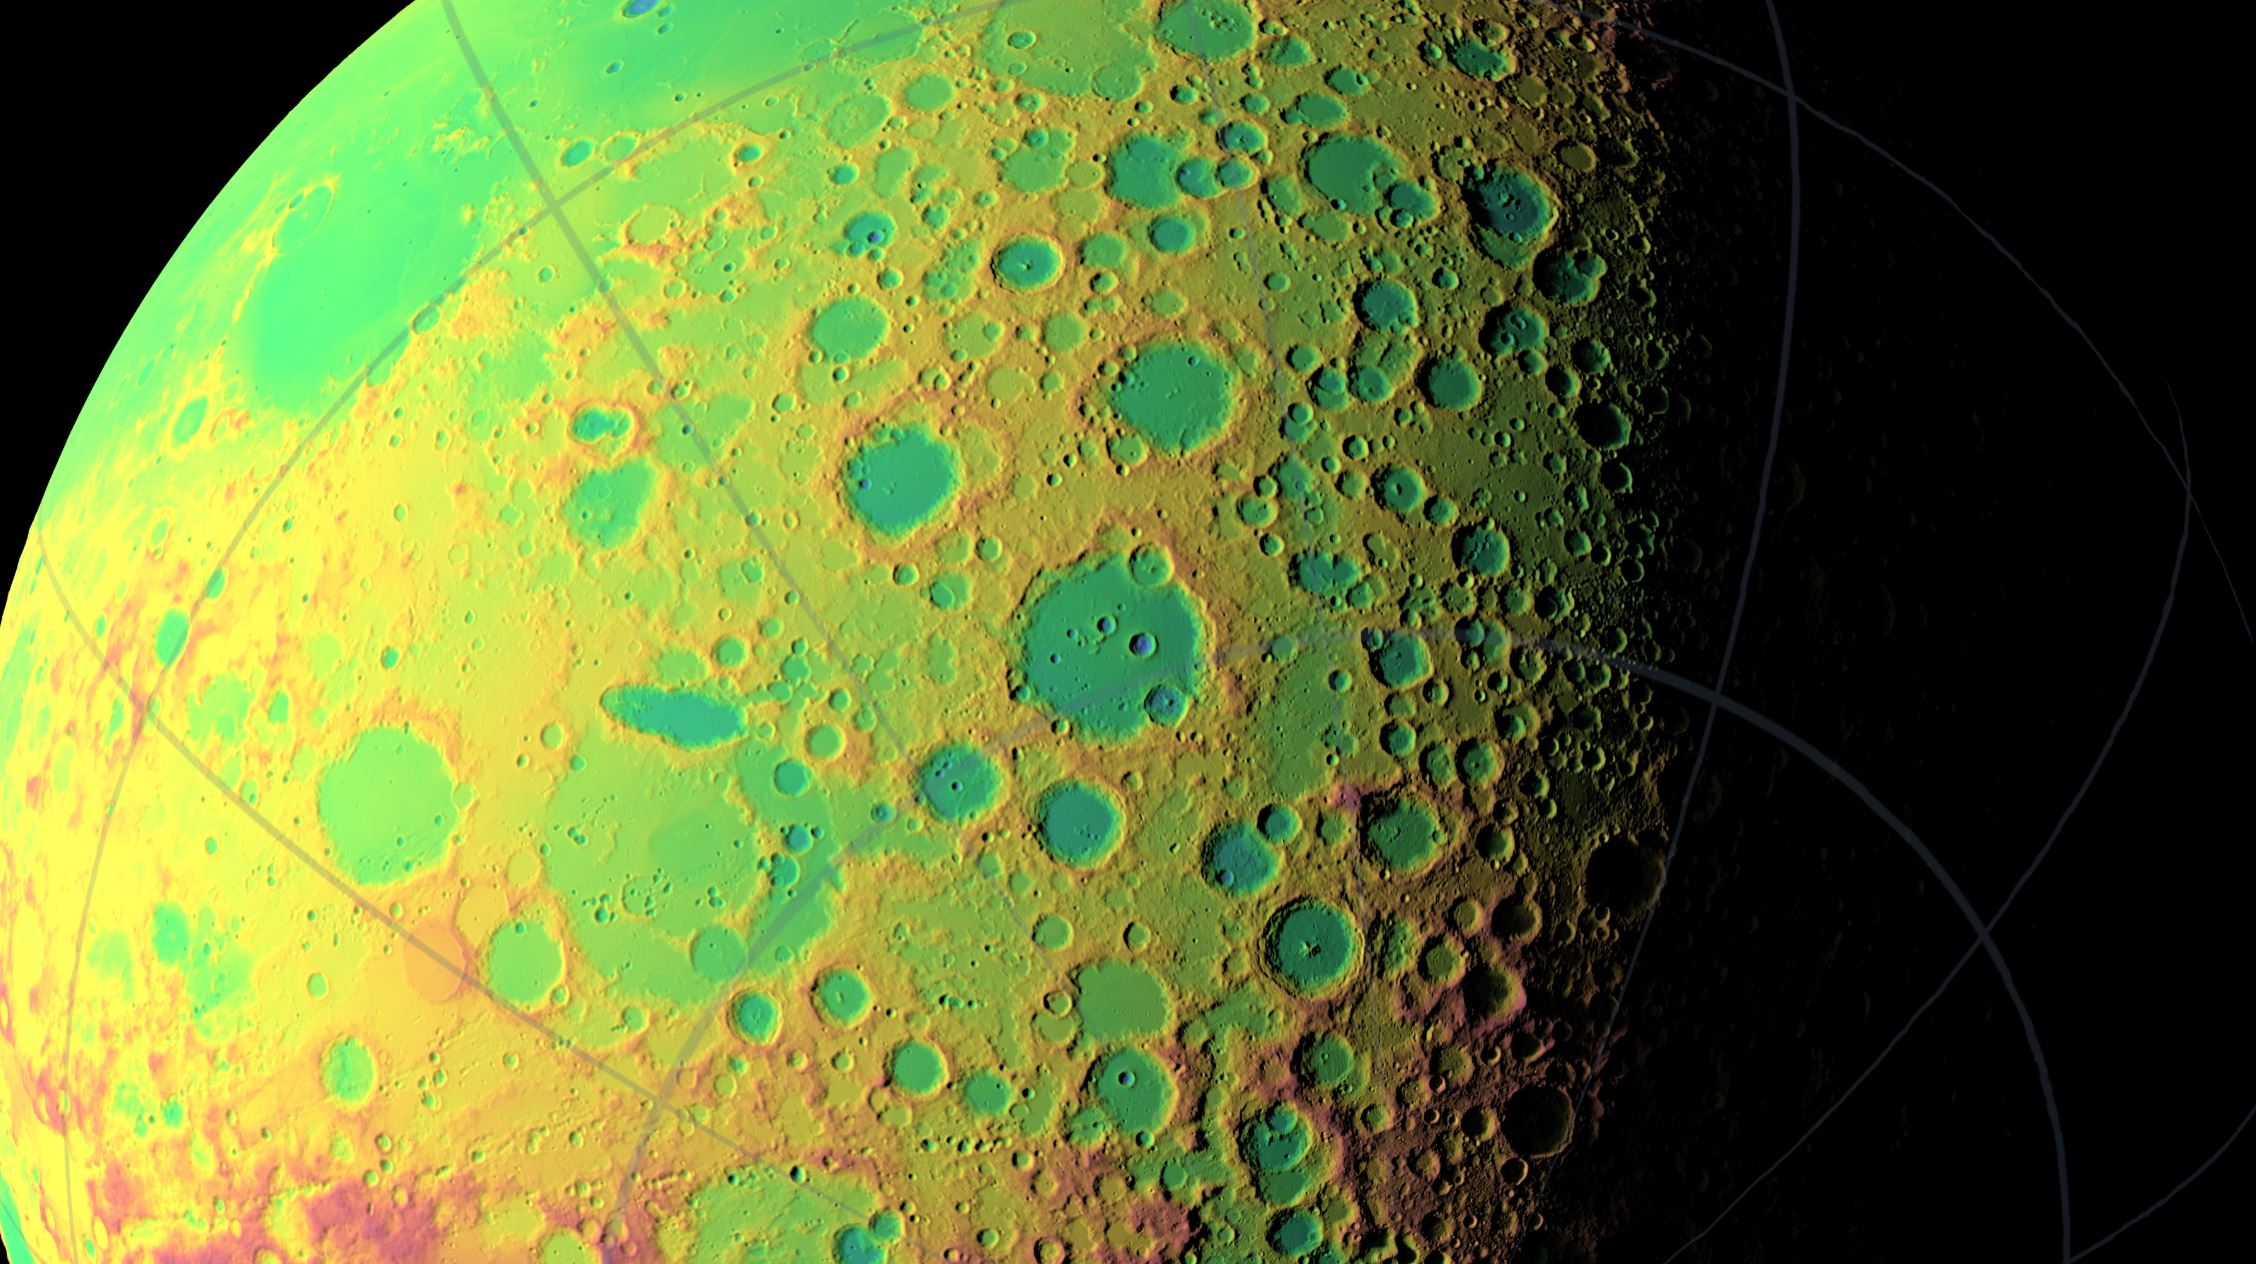 A false color view of the Moon's southern latitudes. The large blue area at the bottom of the frame is the South Pole-Aitken Basin, an enormous and very old impact feature on the far side of the Moon.- Image Credit: NASA/Goddard Space Flight Center Scientific Visualization Studio.